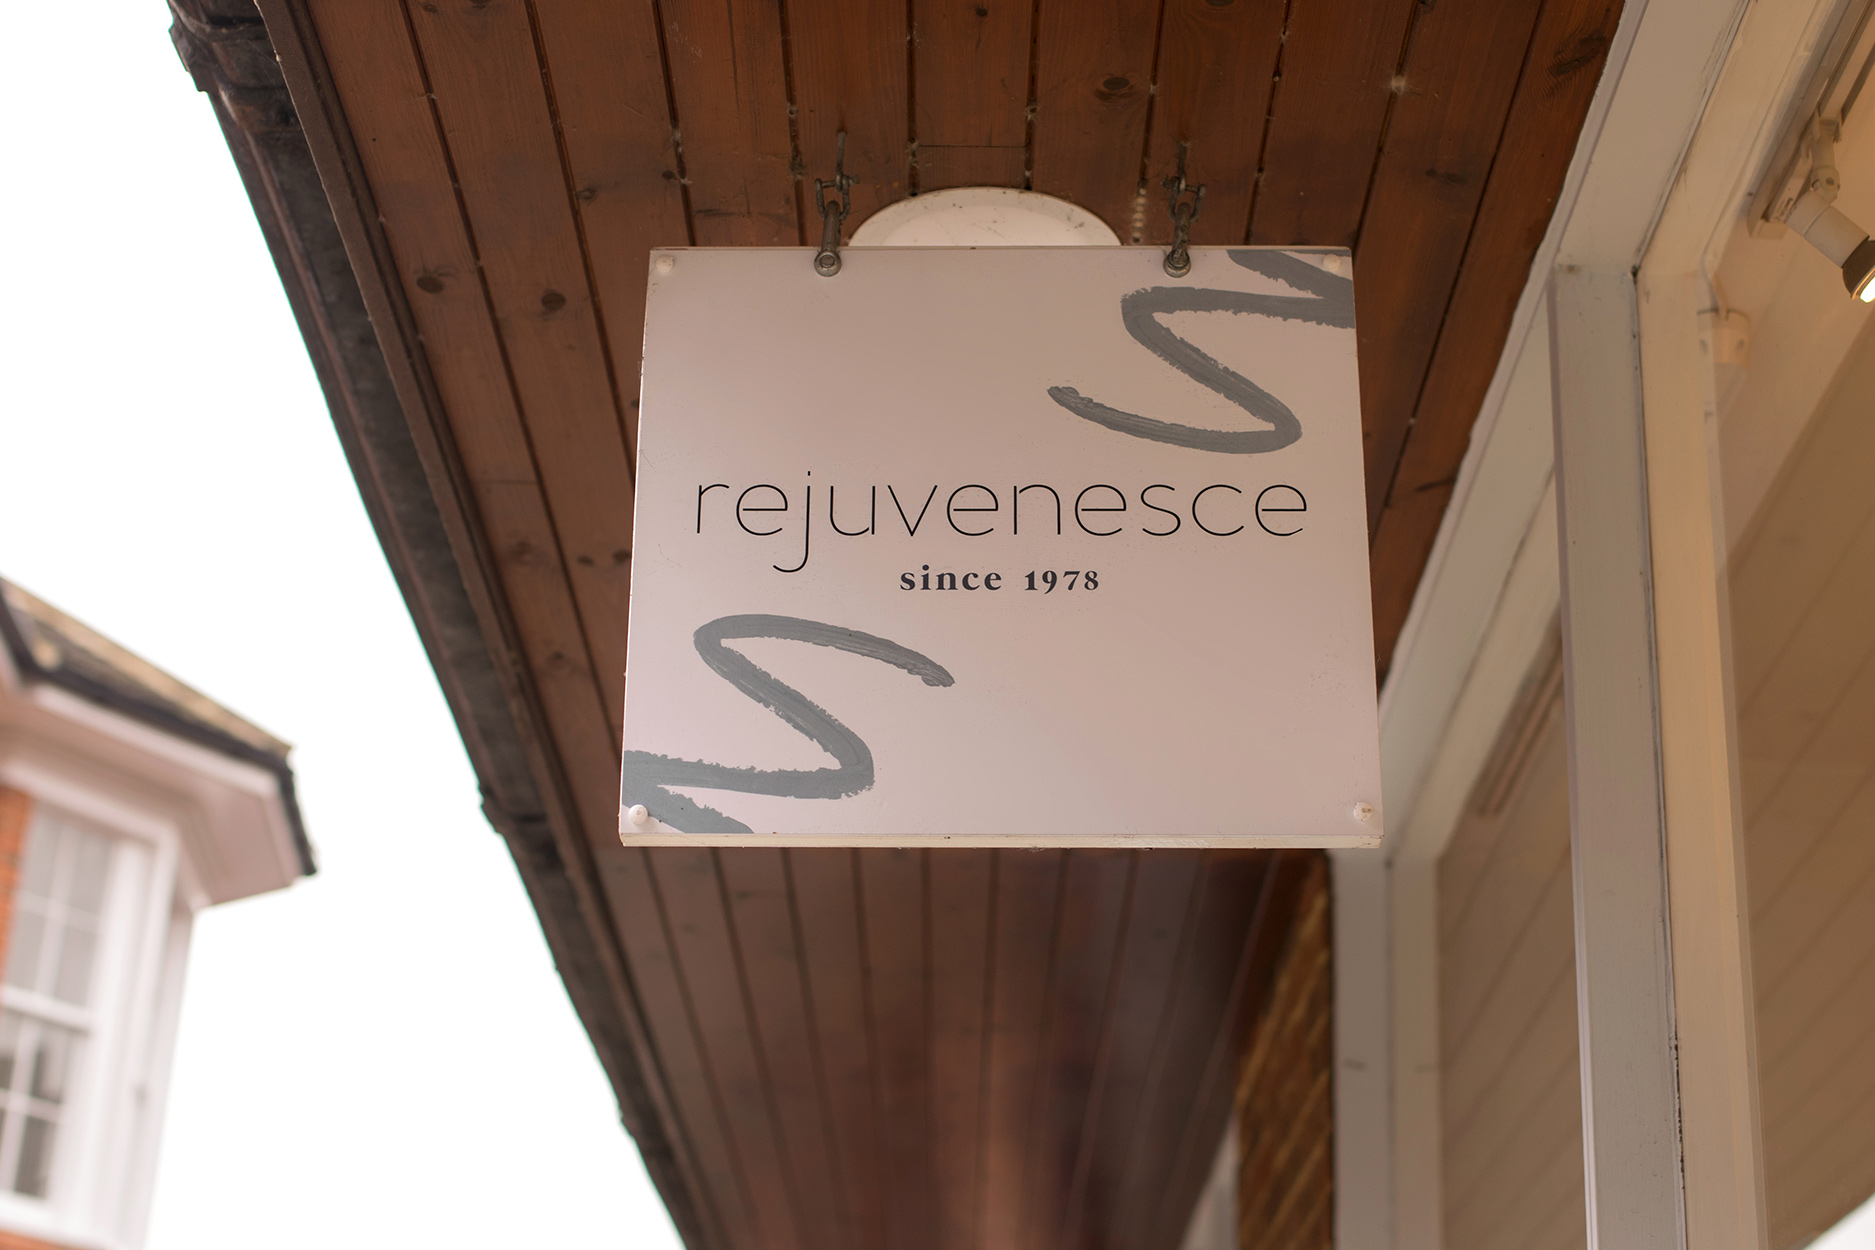 HAnging sign for high-end beauty salon, Rejuvenesce, based in Marlborough  - Designed by Wiltshire-based graphic designer, Kaye Huett